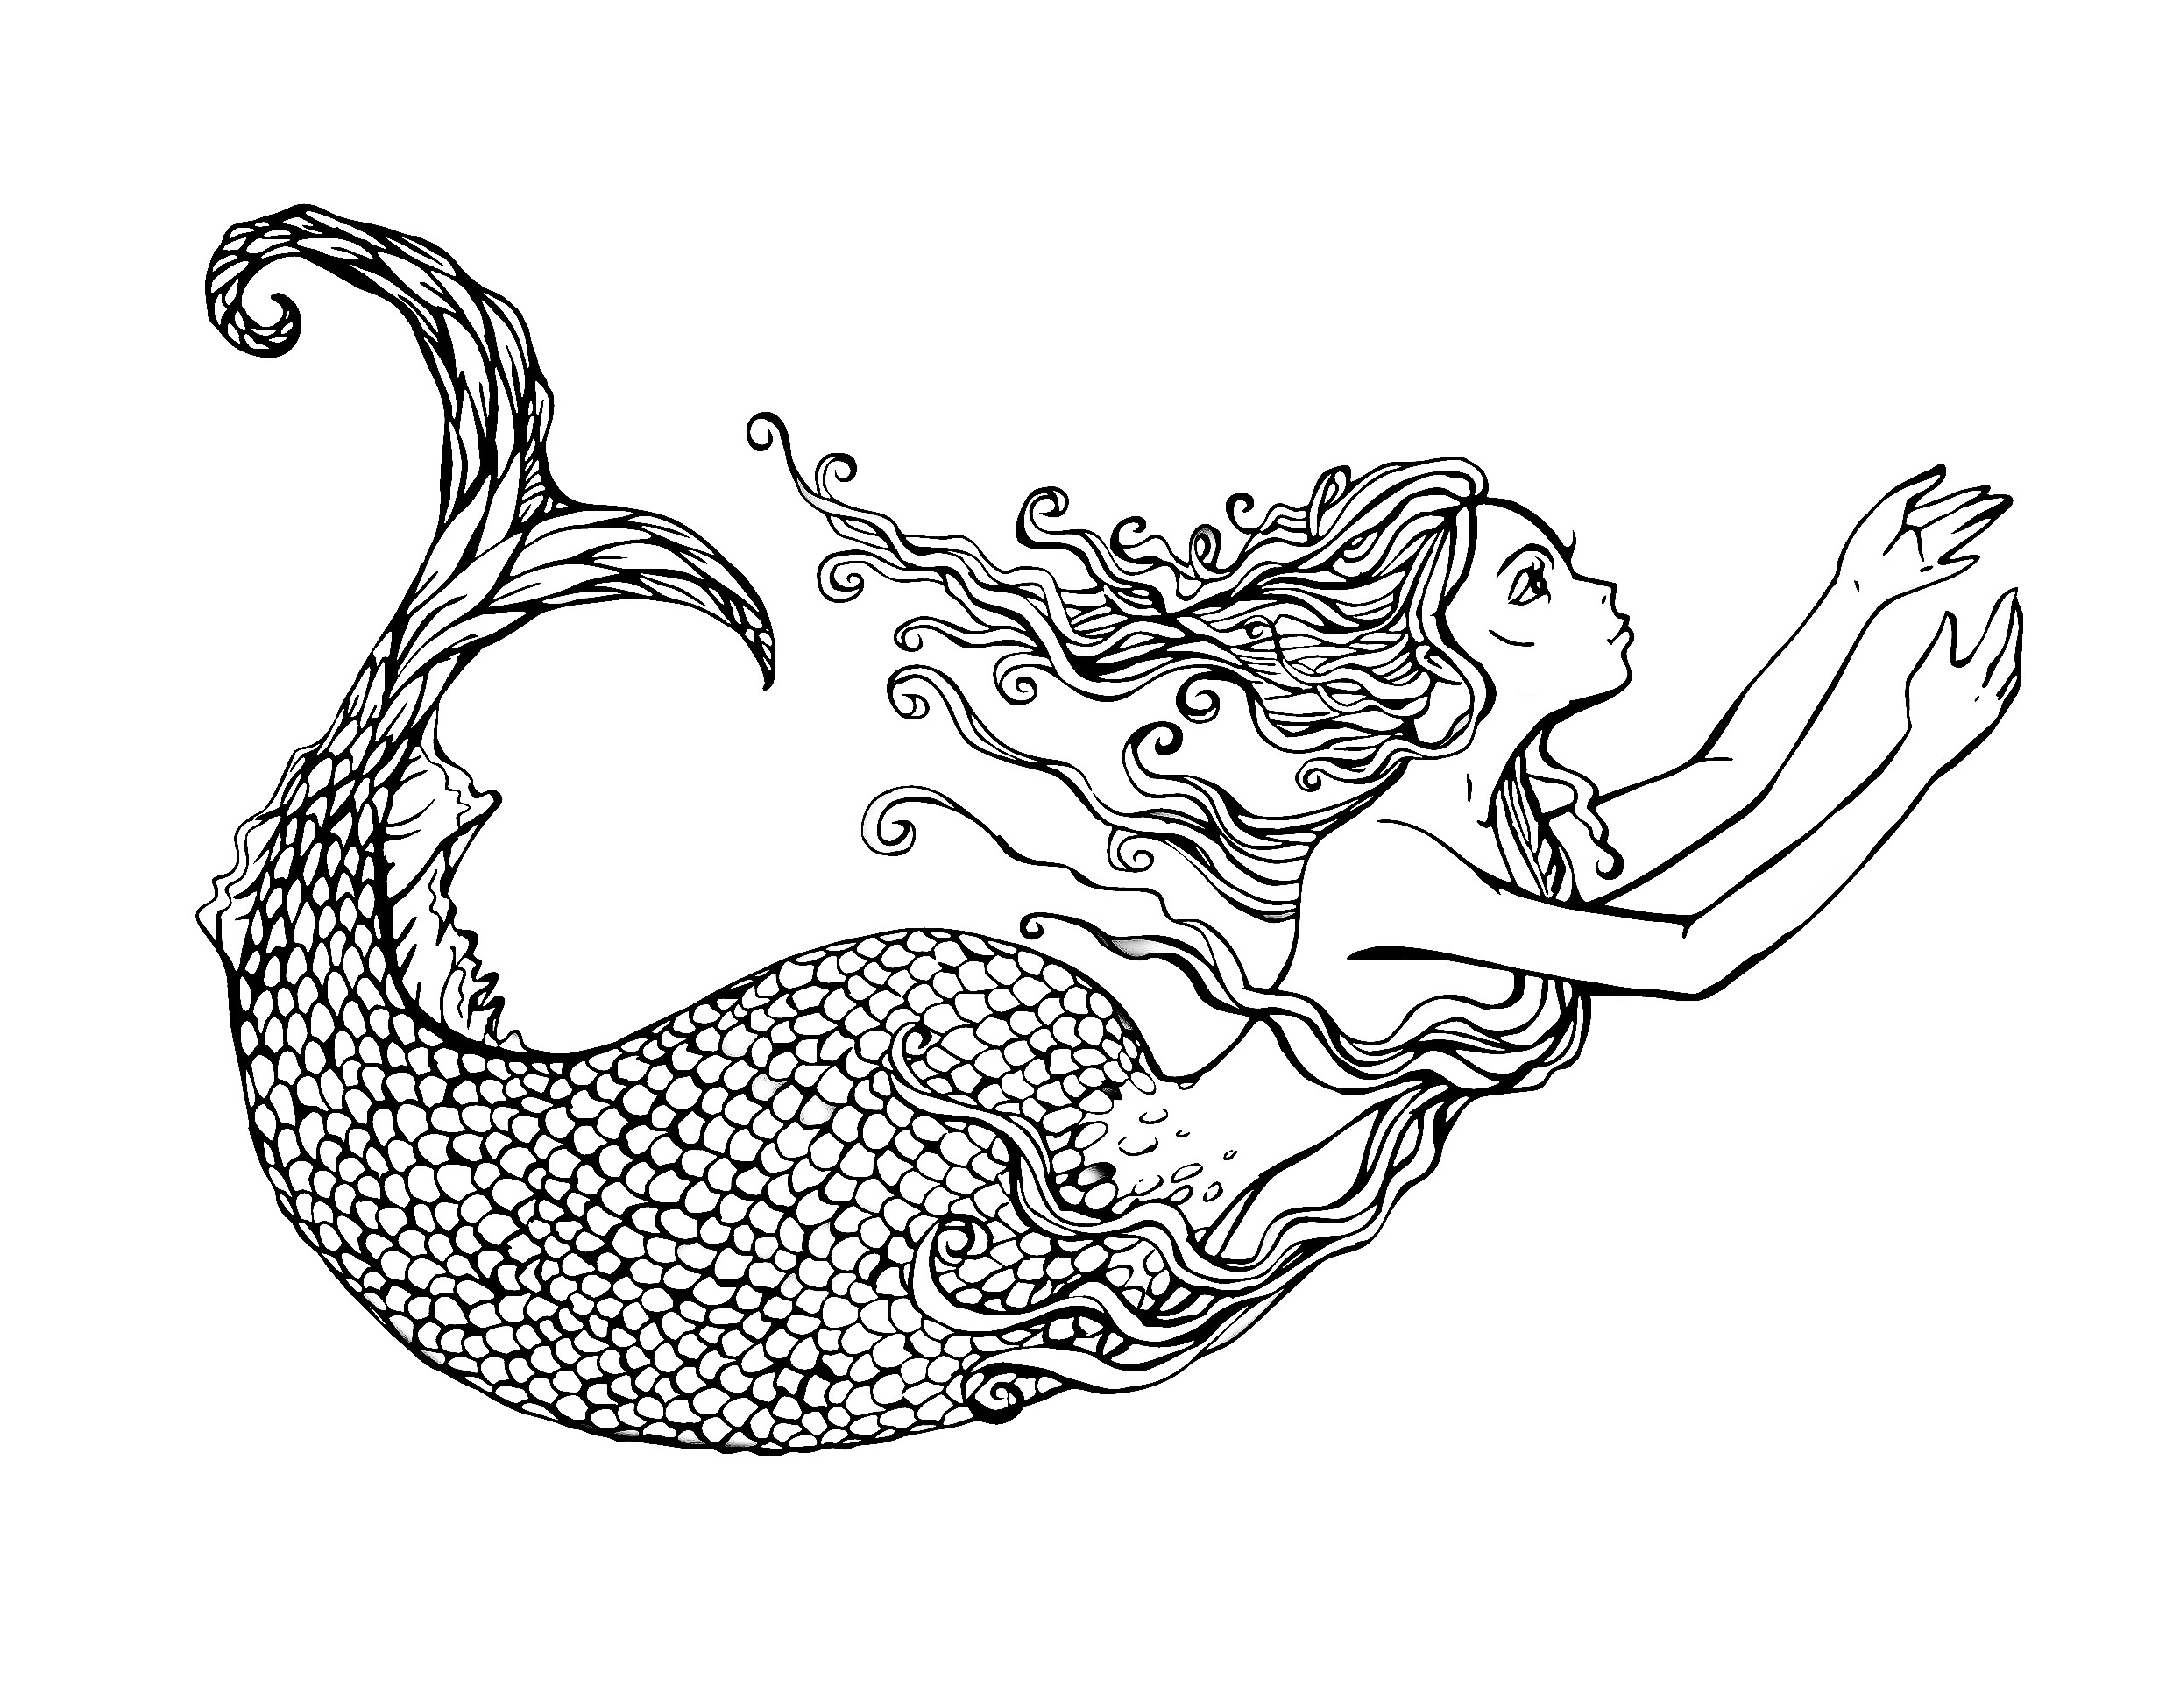 Swimming mermaid, exclusive coloring page, by Lian2011